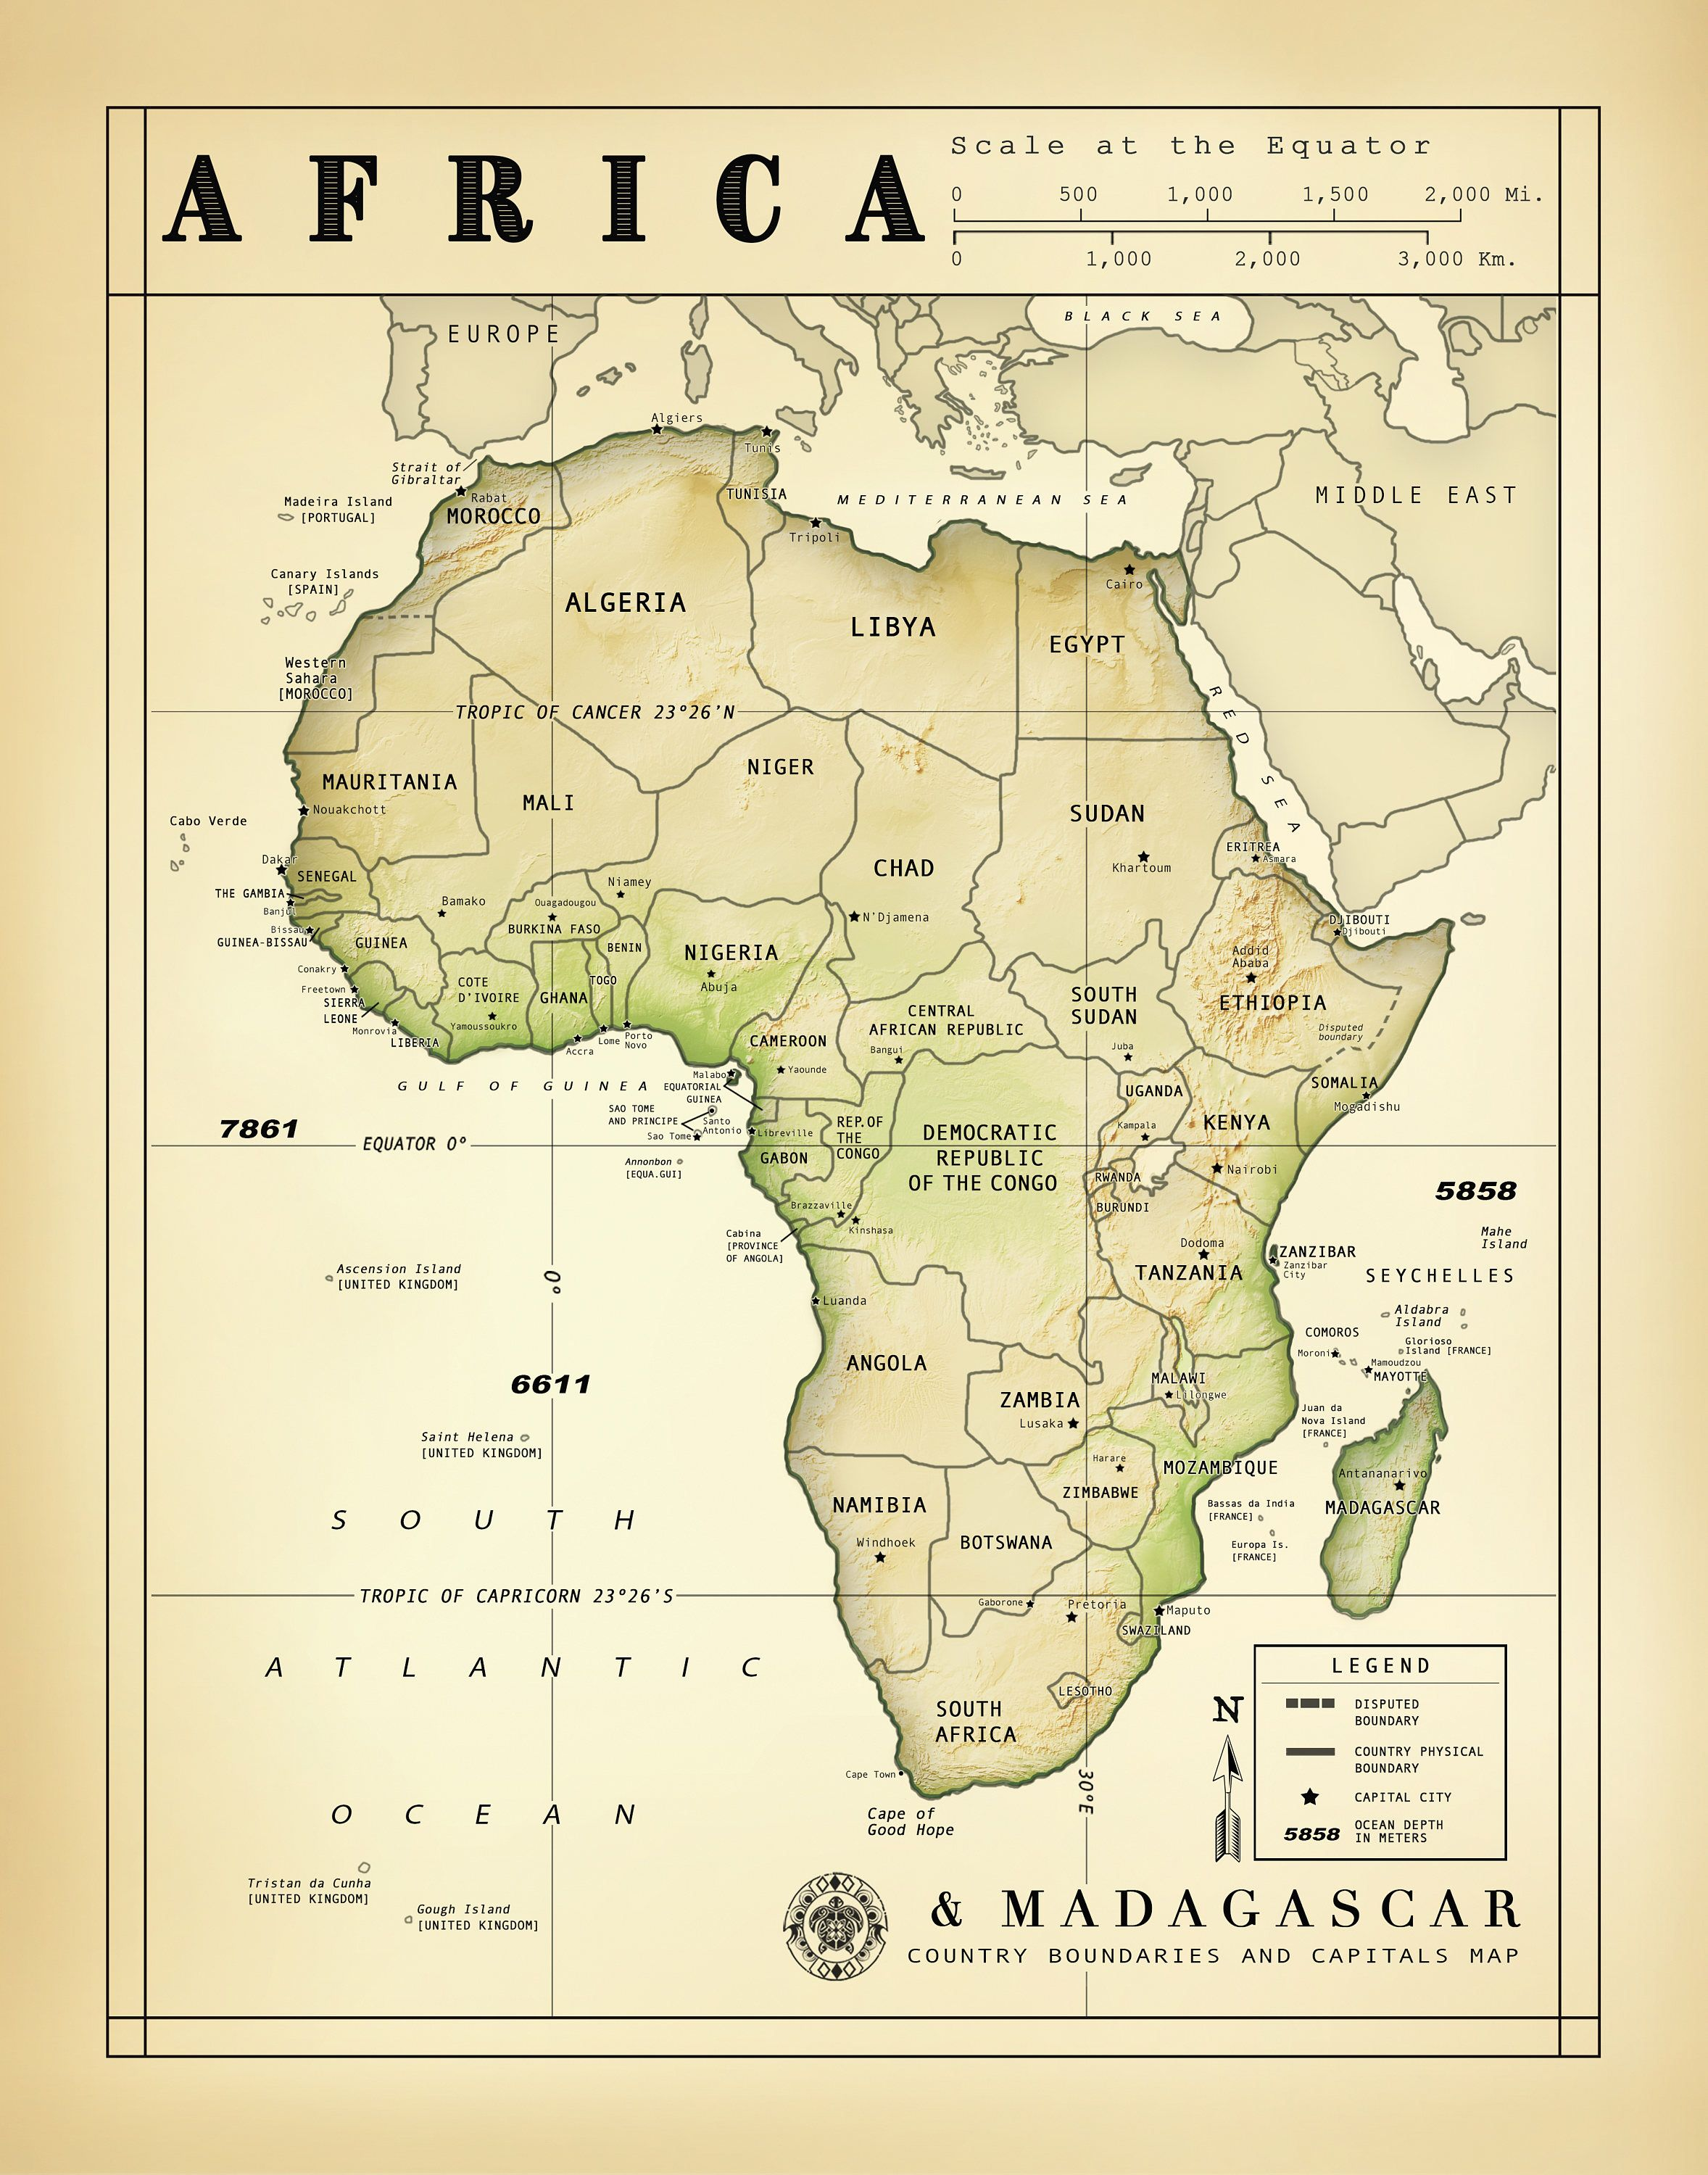 Africa madagascar 11 x 14 vintage inspired country boundaries africa madagascar 11 x 14 vintage inspired country boundaries map by kokuadesigncompany on gumiabroncs Gallery